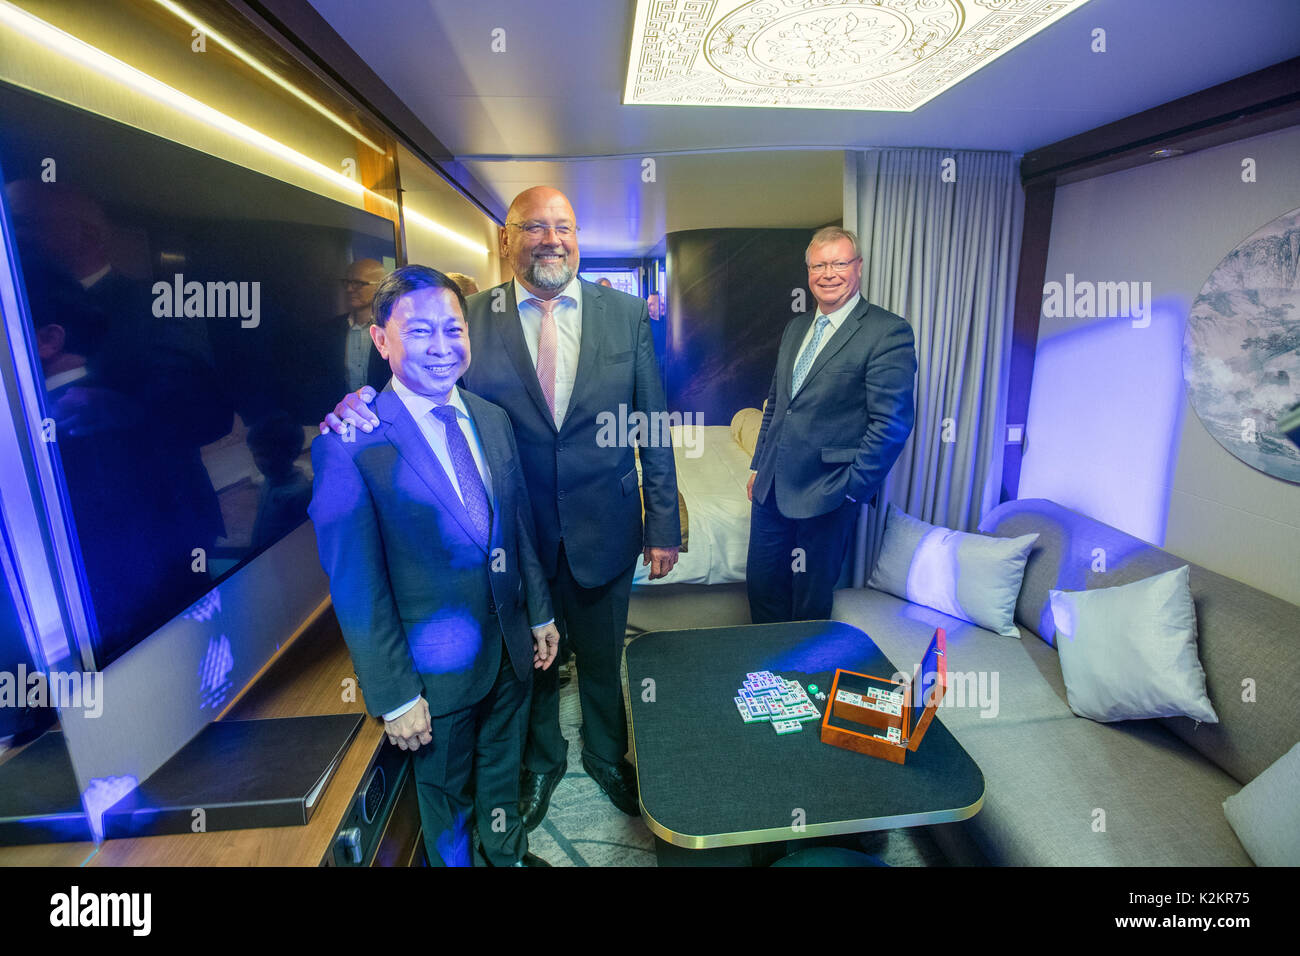 Wismar, Germany. 1st Sep, 2017. The chairman of the Malaysian Genting Group Colin Au (L) and the minister of economy Stock Photo